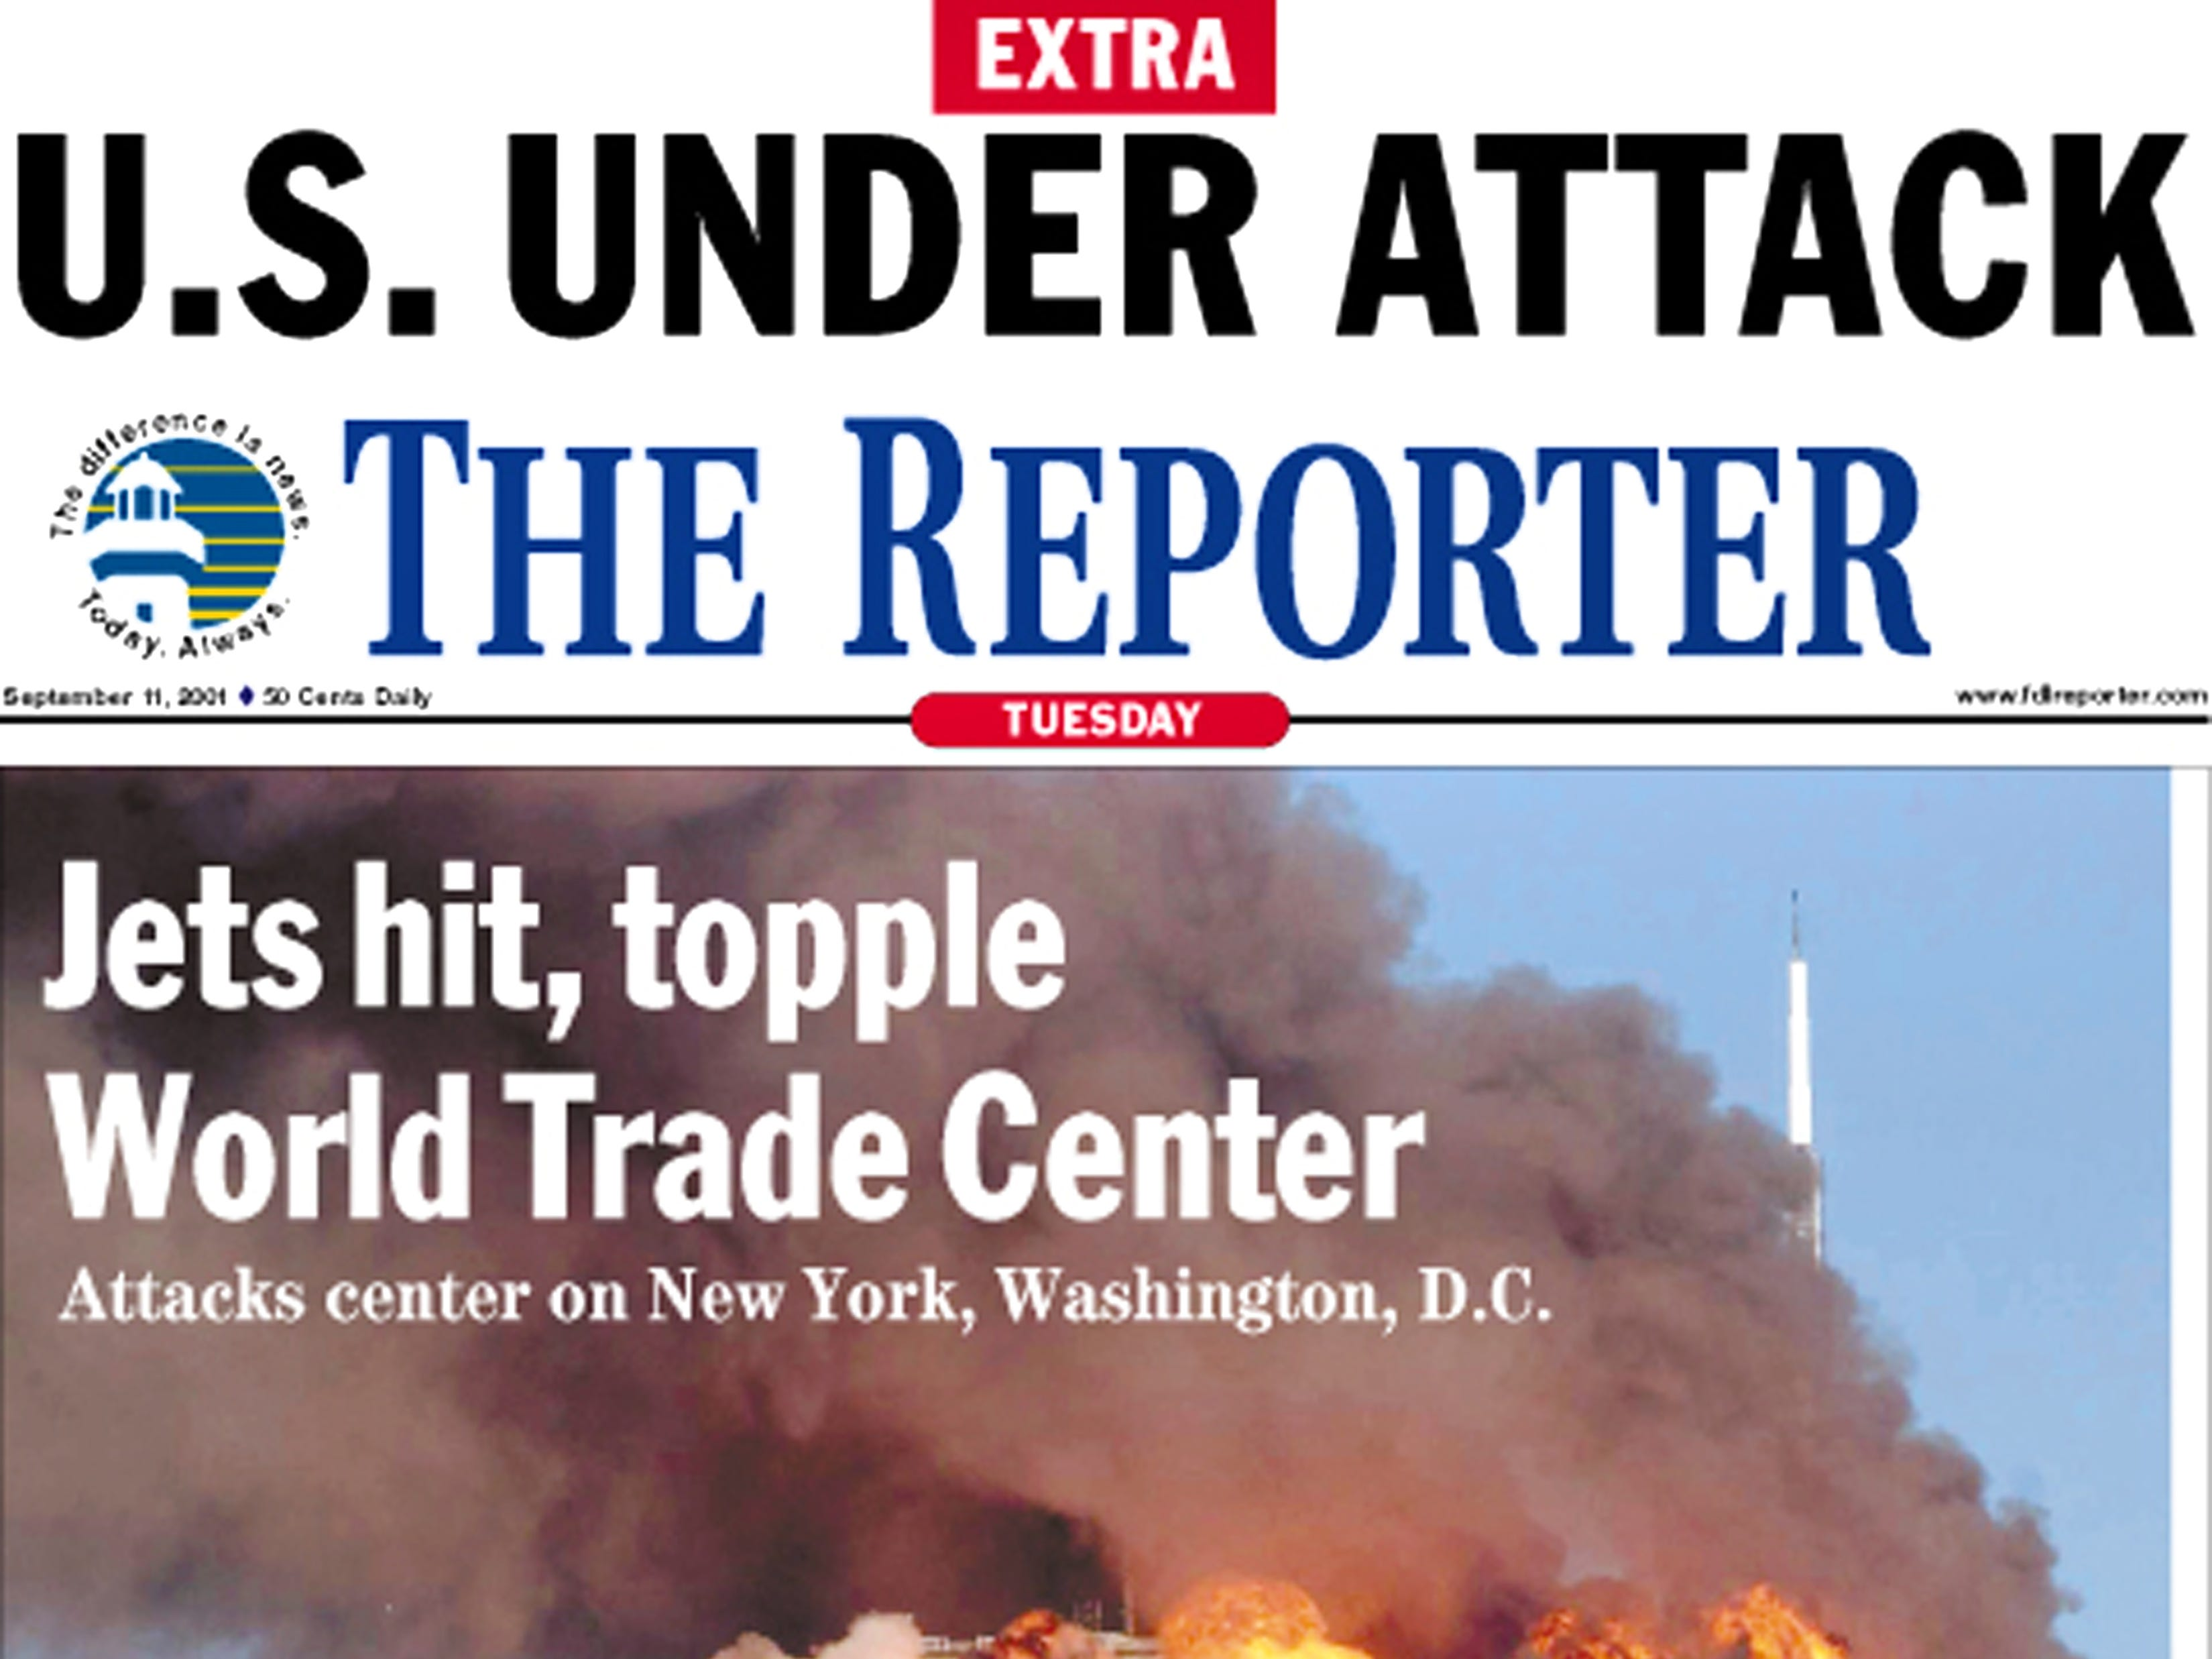 Front page of The Reporter on Sept. 12, 2001